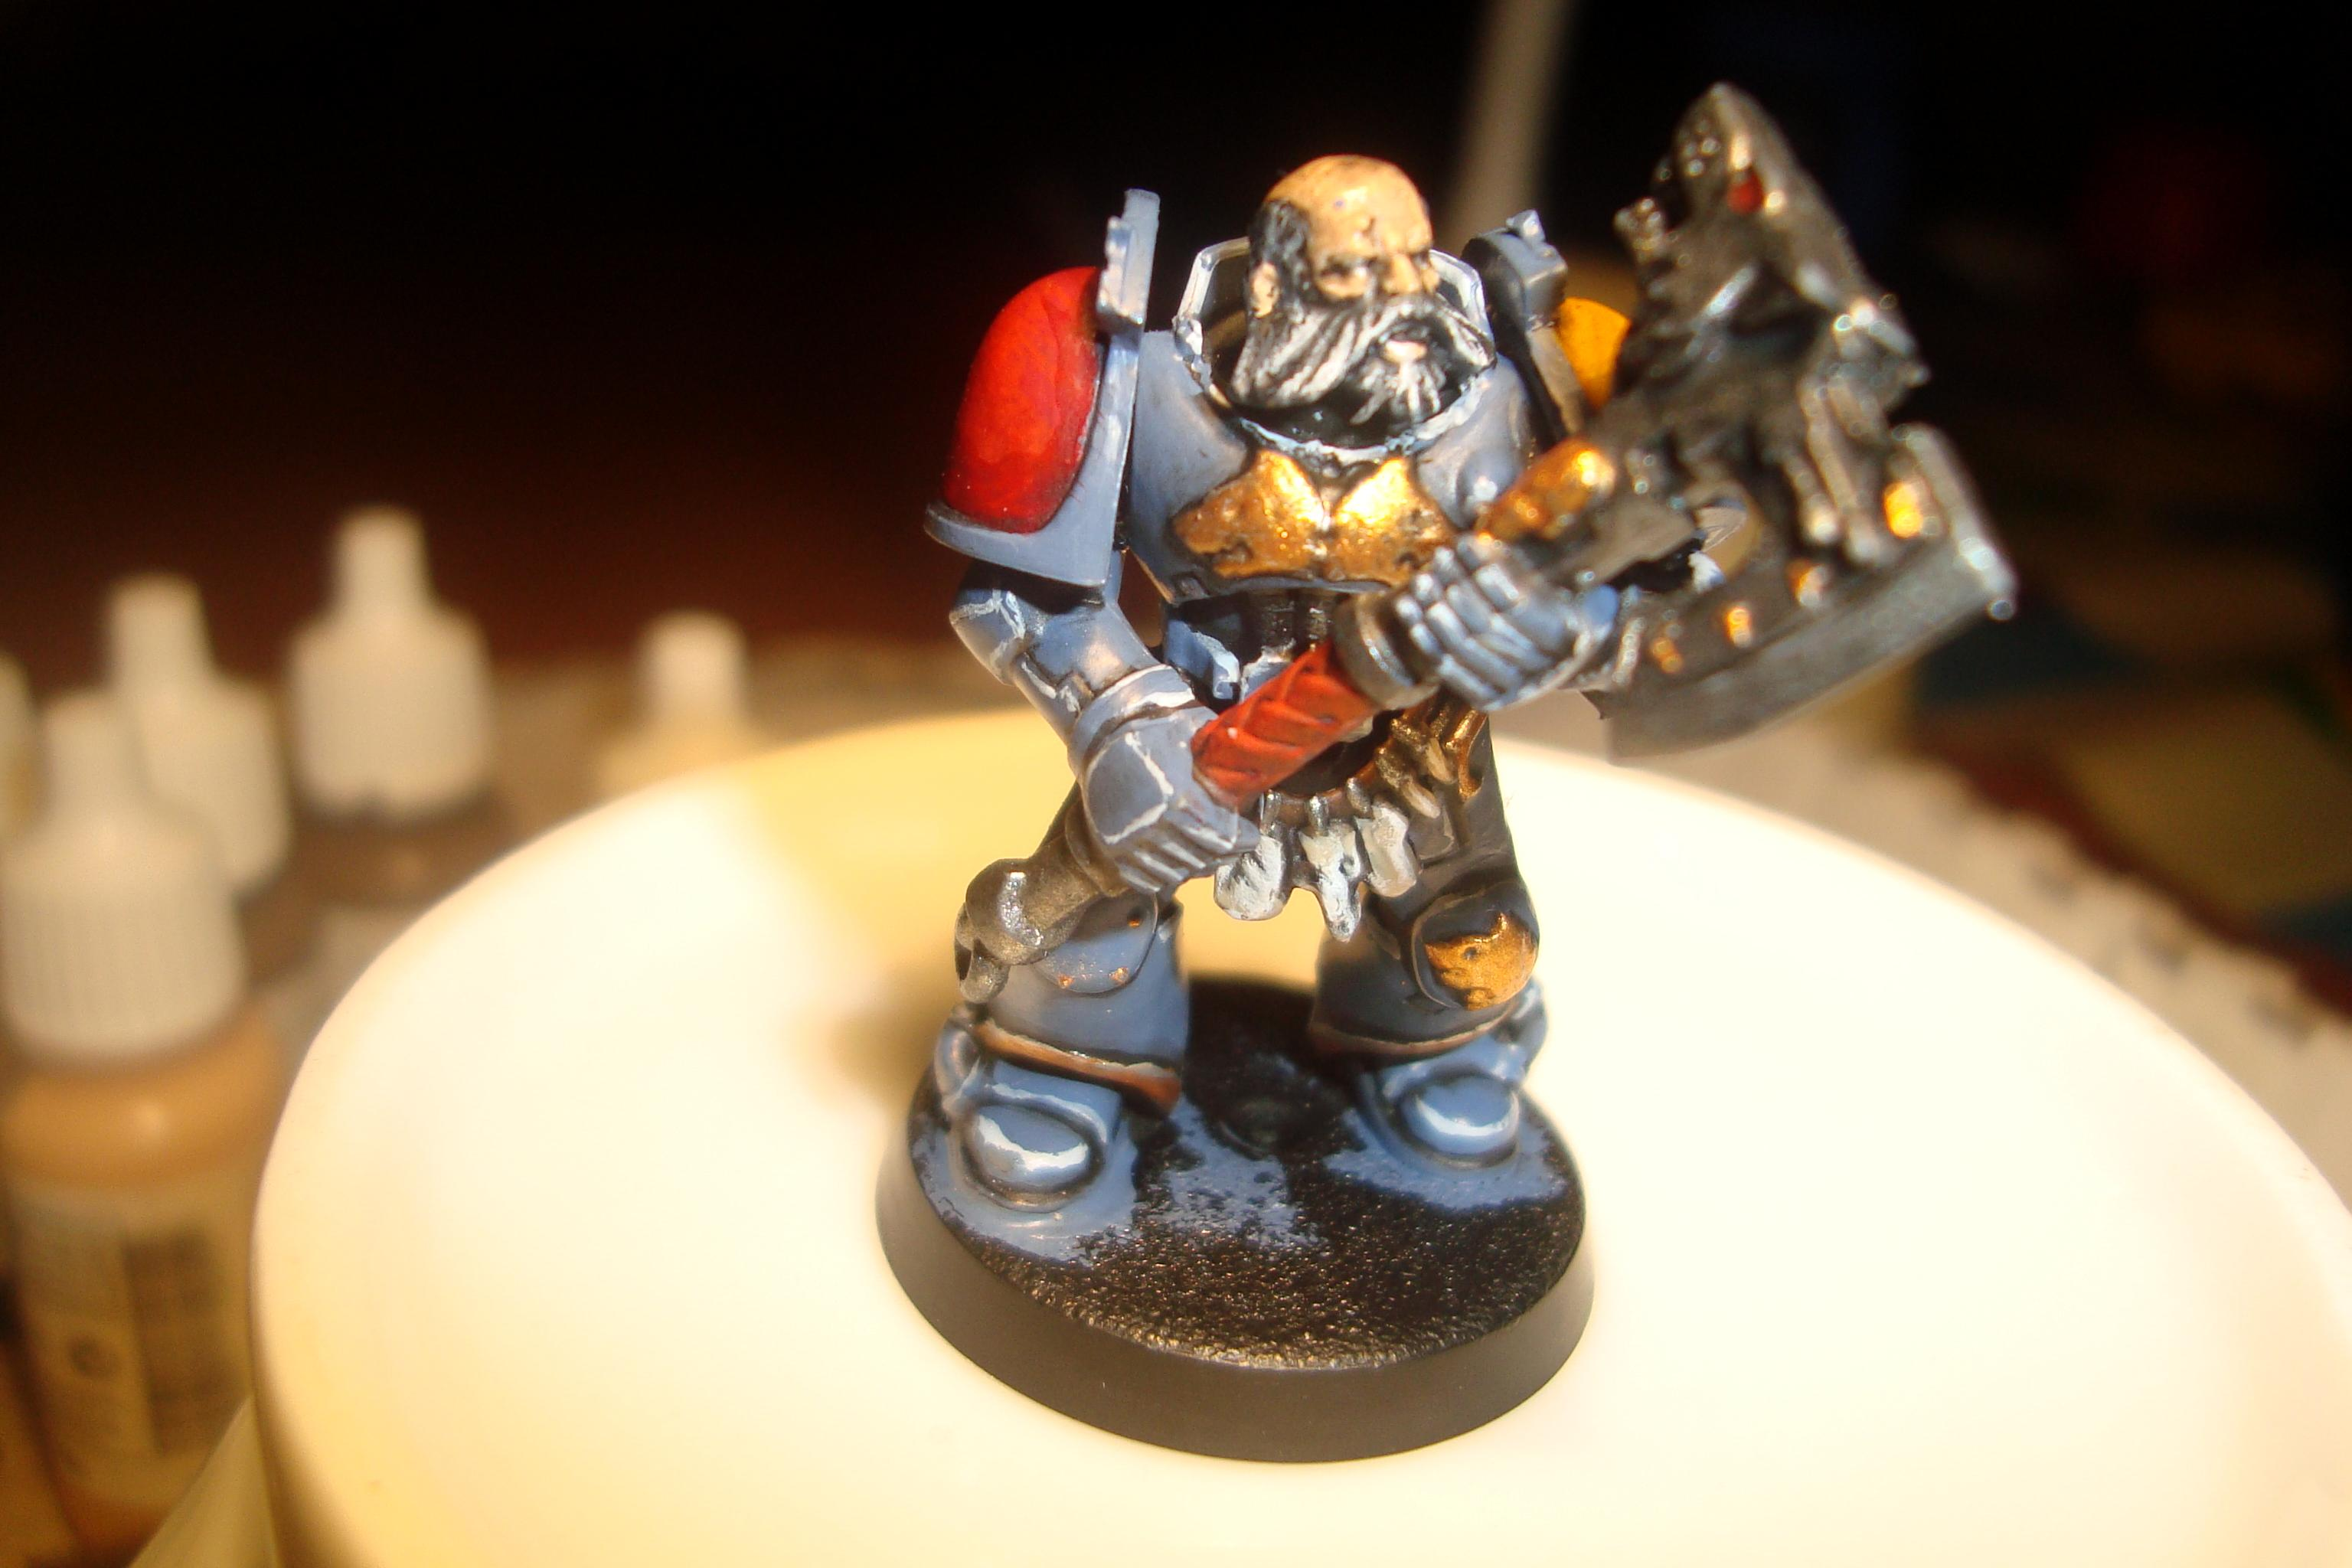 Semi compeleted wolg guard with frost axe